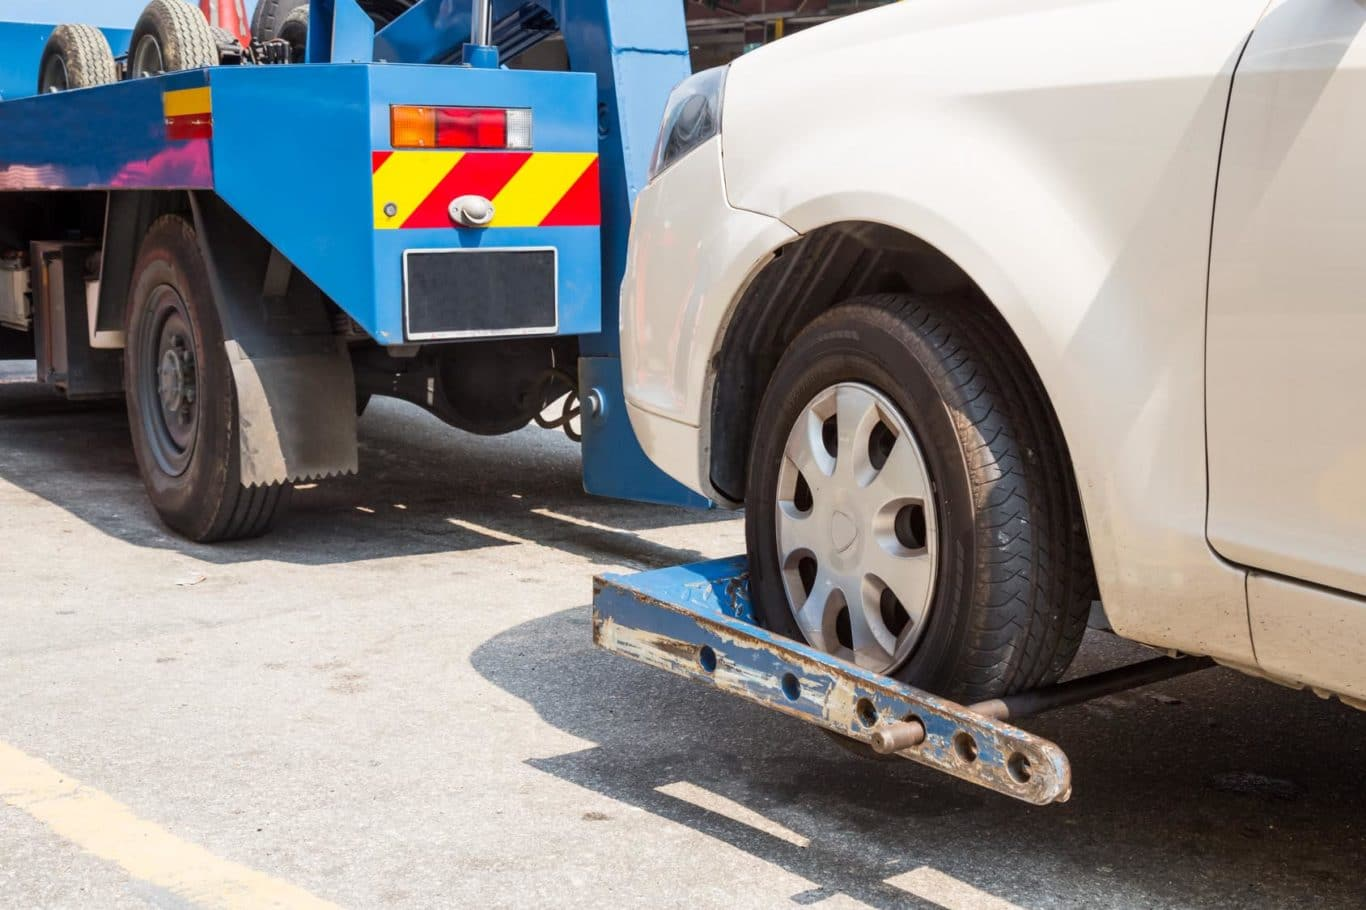 Kilteel expert Car Towing services